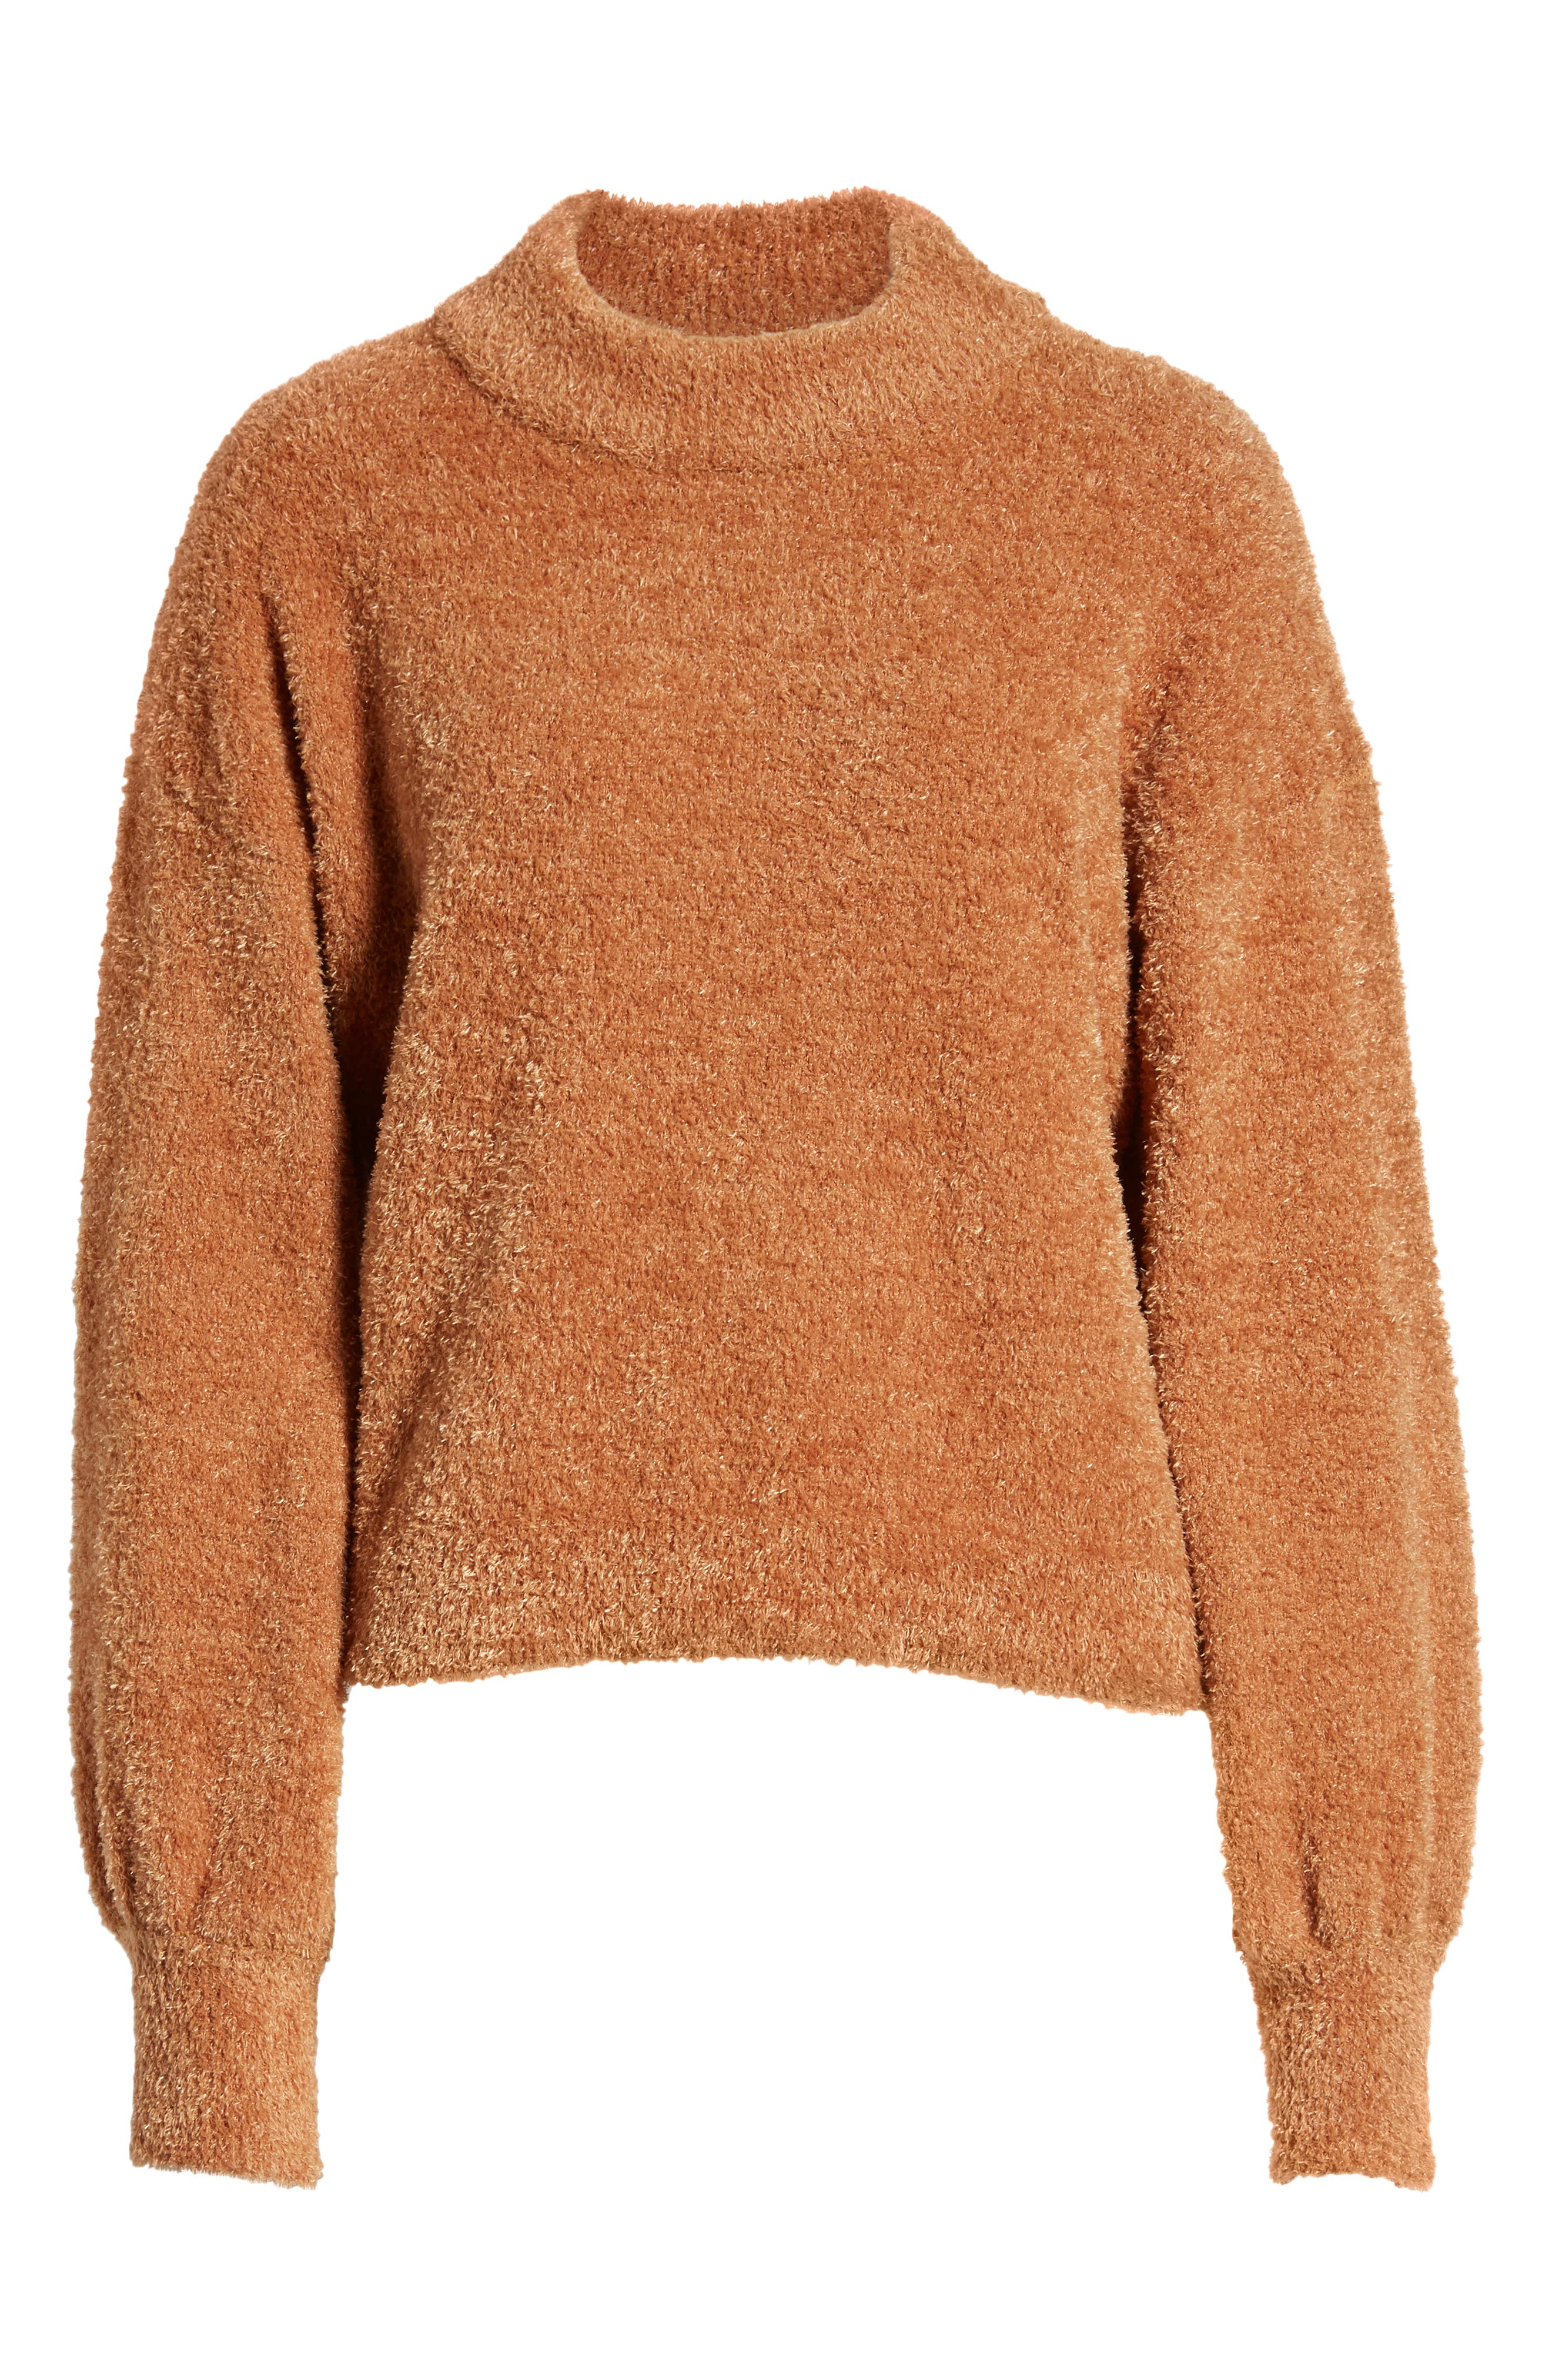 CODEXMODE,                             Cozy Chenille Sweater,                             Alternate thumbnail 6, color,                             250